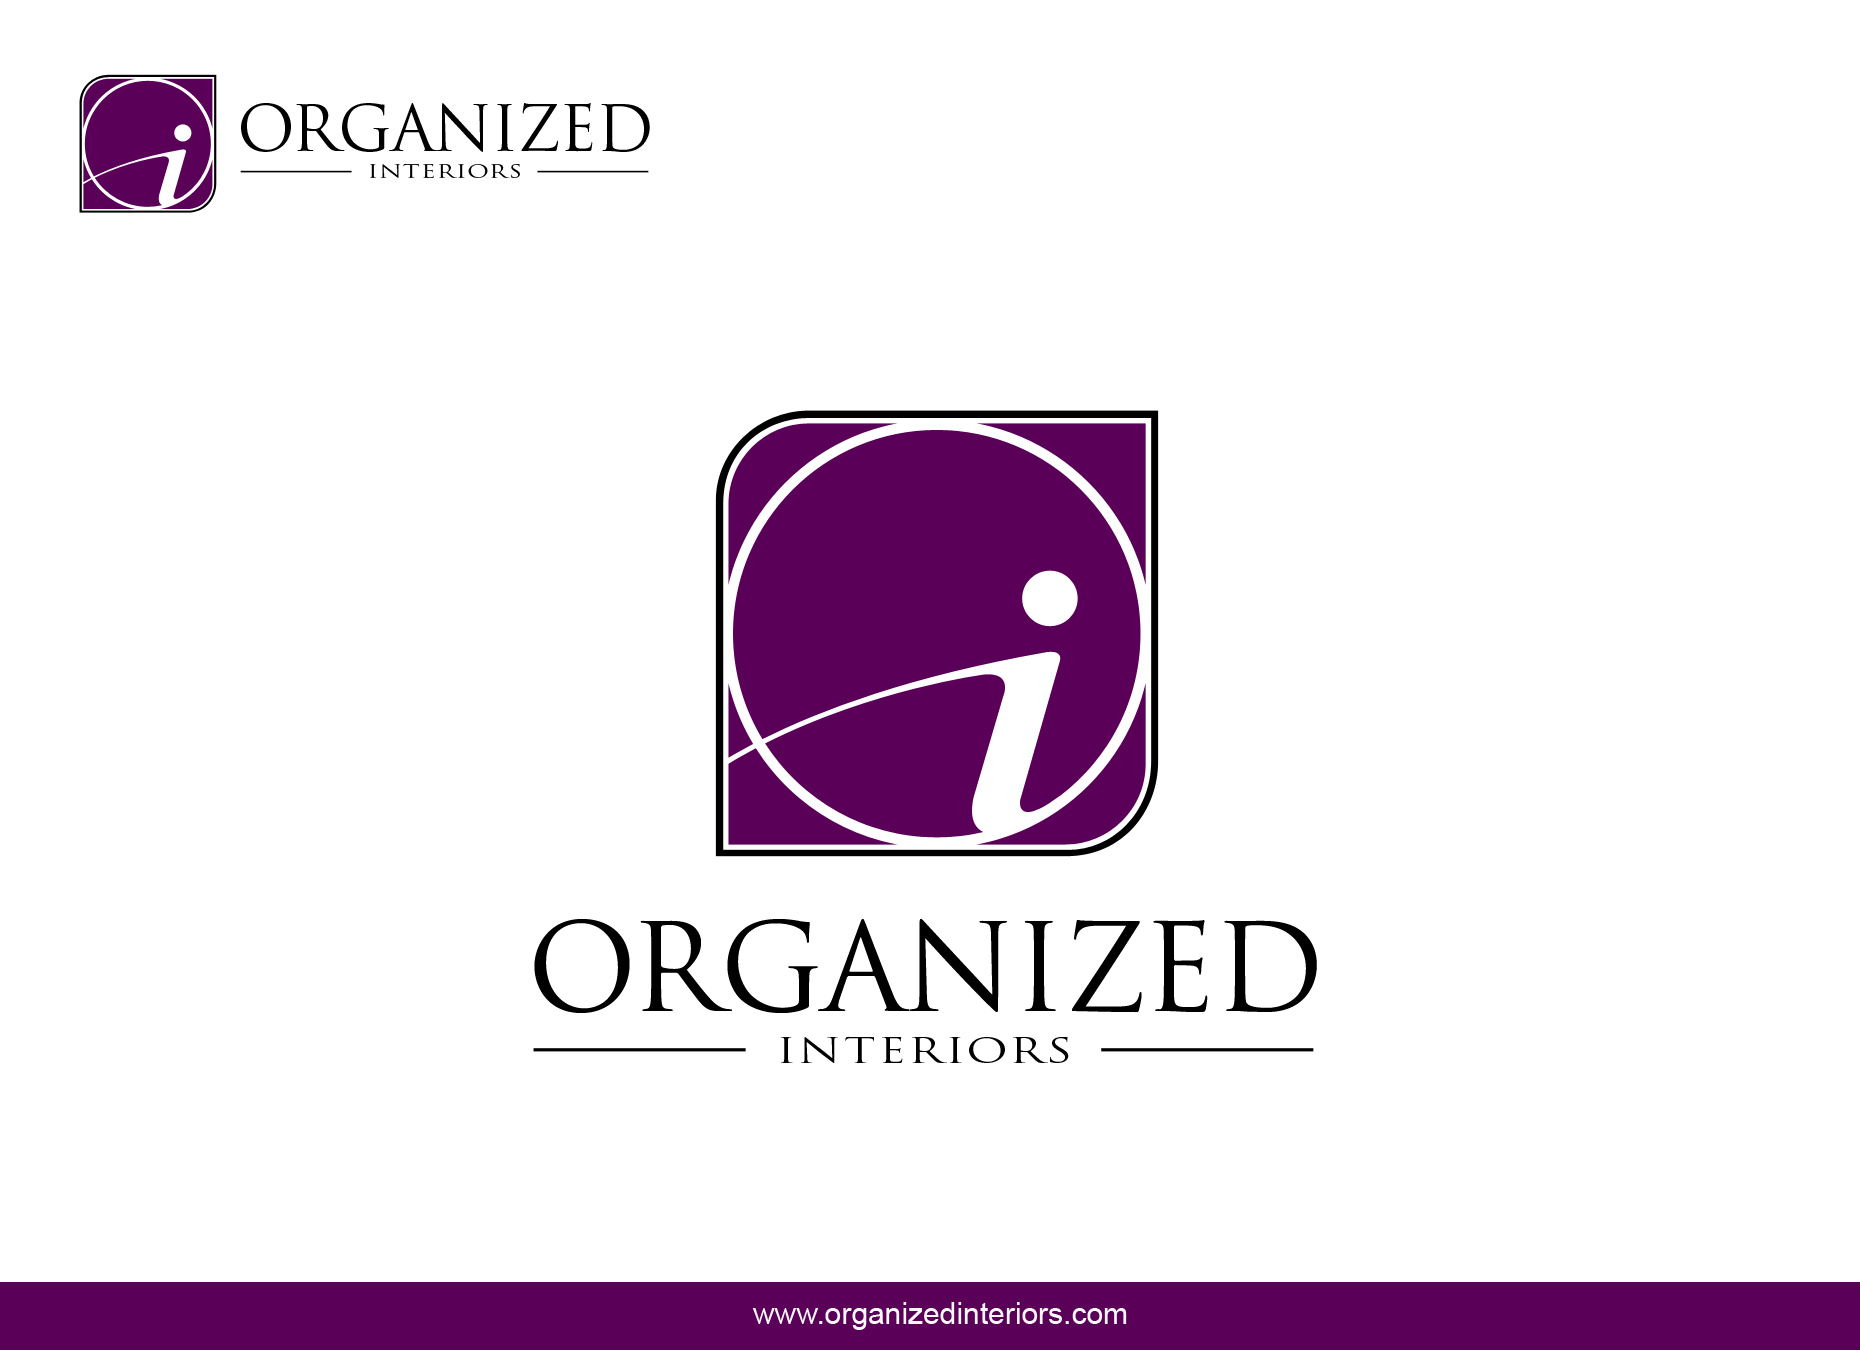 Logo Design by omARTist - Entry No. 165 in the Logo Design Contest Imaginative Logo Design for Organized Interiors.